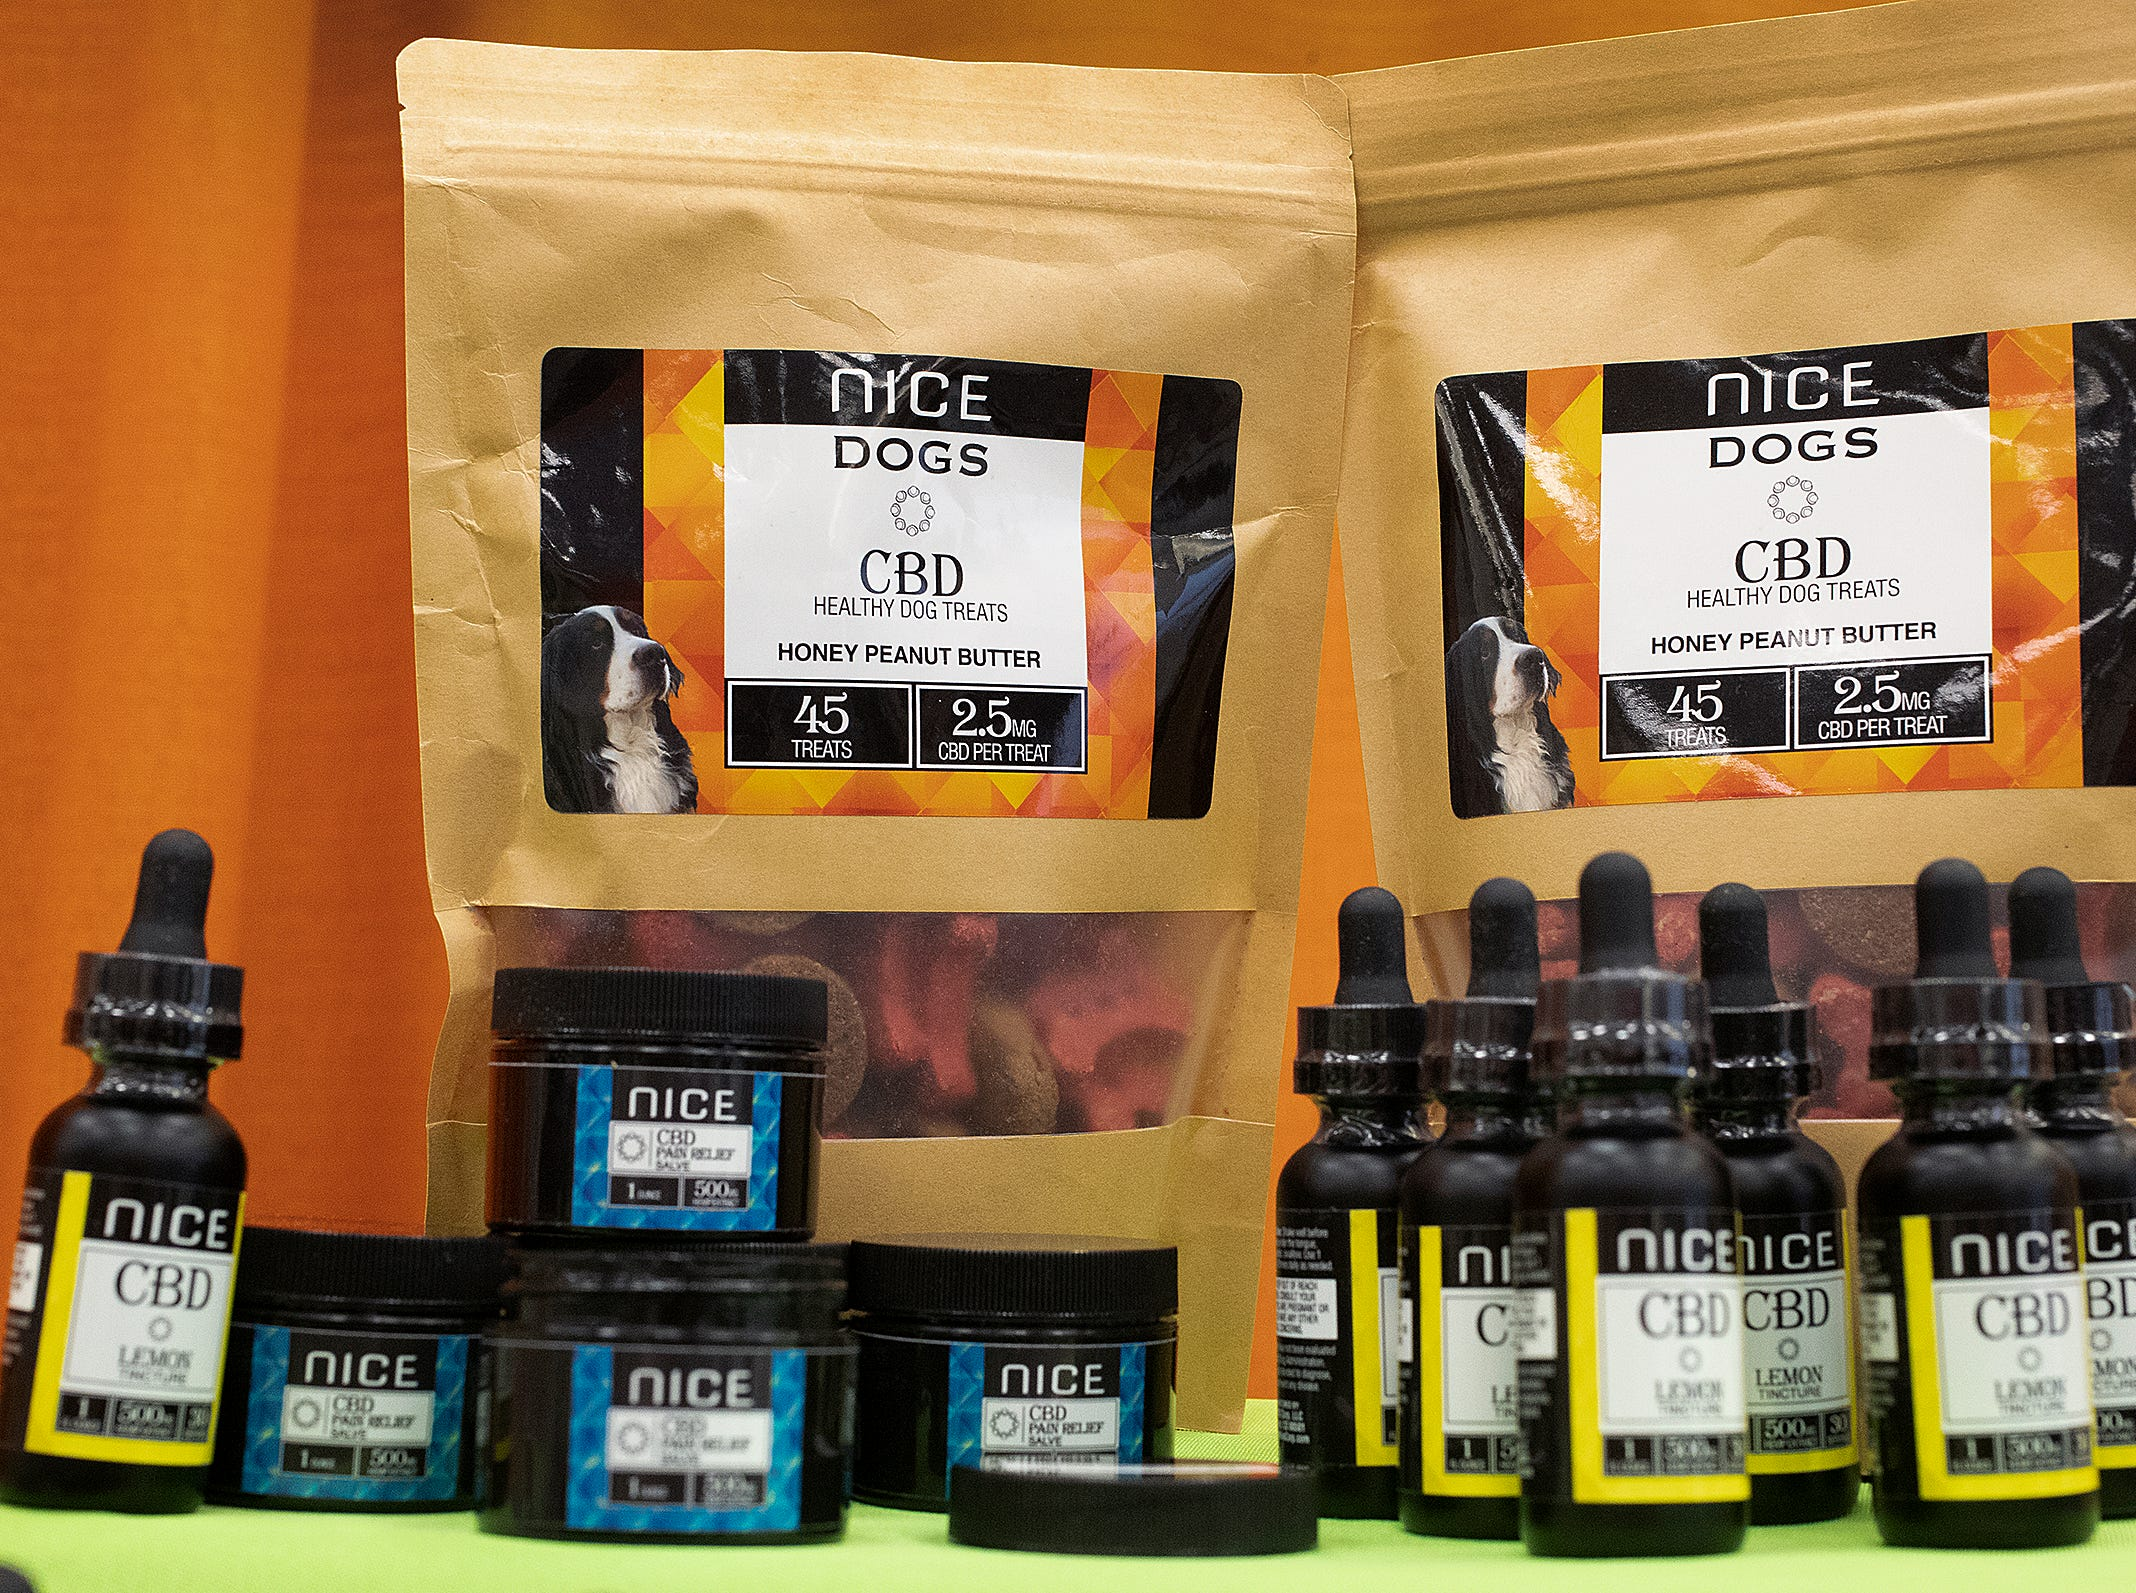 Nice CBD dog treats at the CBD Expo at the Marriott East in Indianapolis on Friday, Mar. 15, 2019.